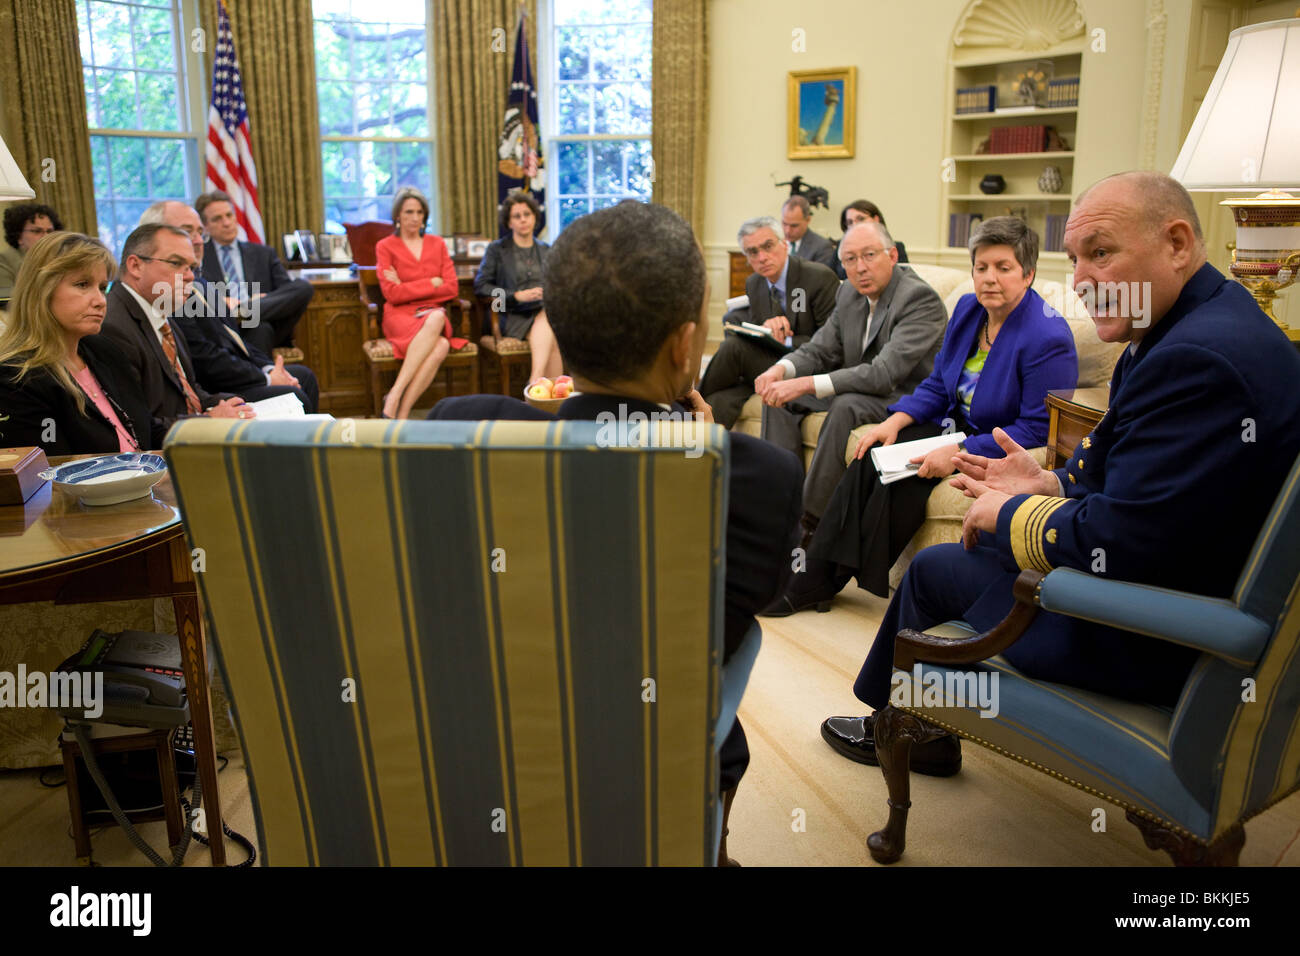 Obama meets with Admiral Thad W. Allen, Commandant of the United States Coast Guard and other administration officials - Stock Image